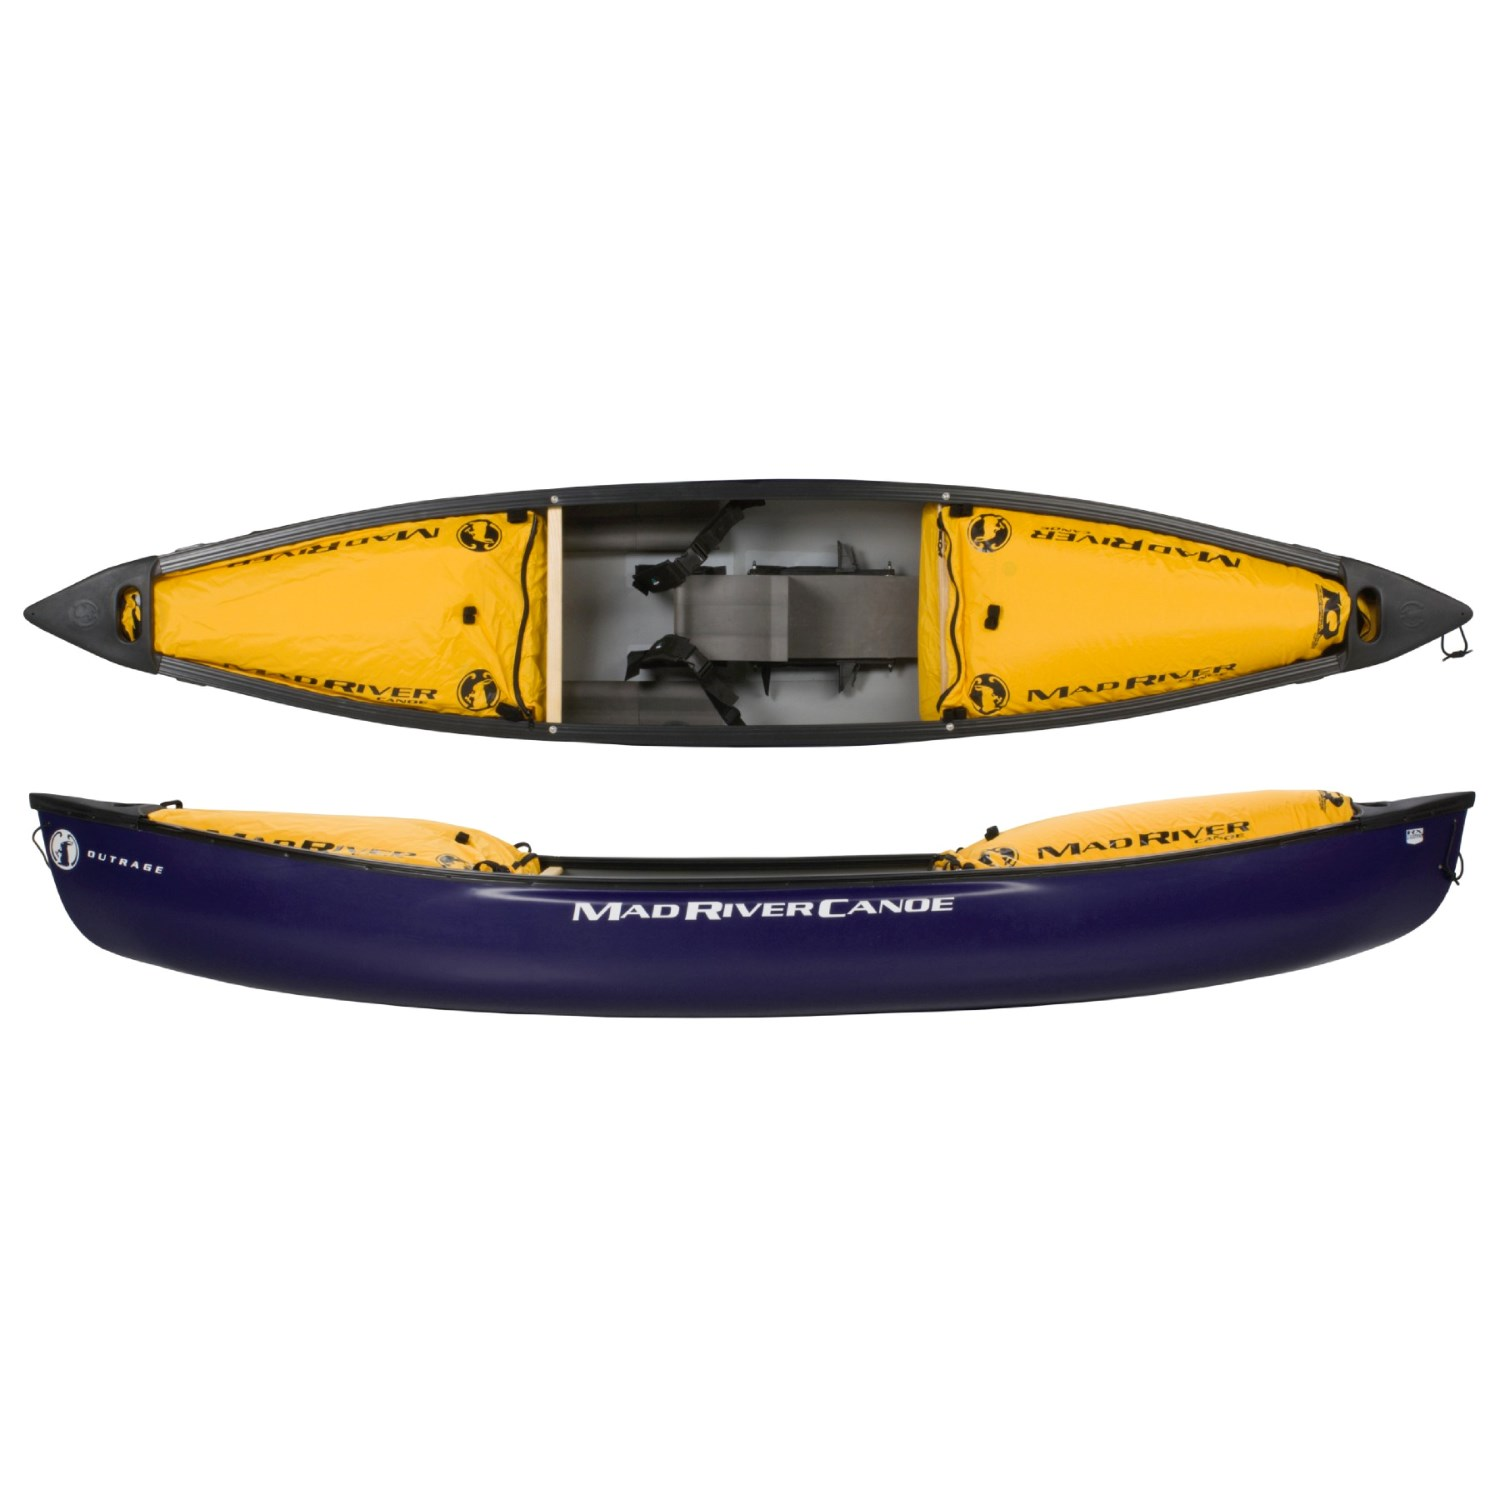 Mad River Outrage IQ2 Whitewater Solo Canoe 12' 1435R 29 on